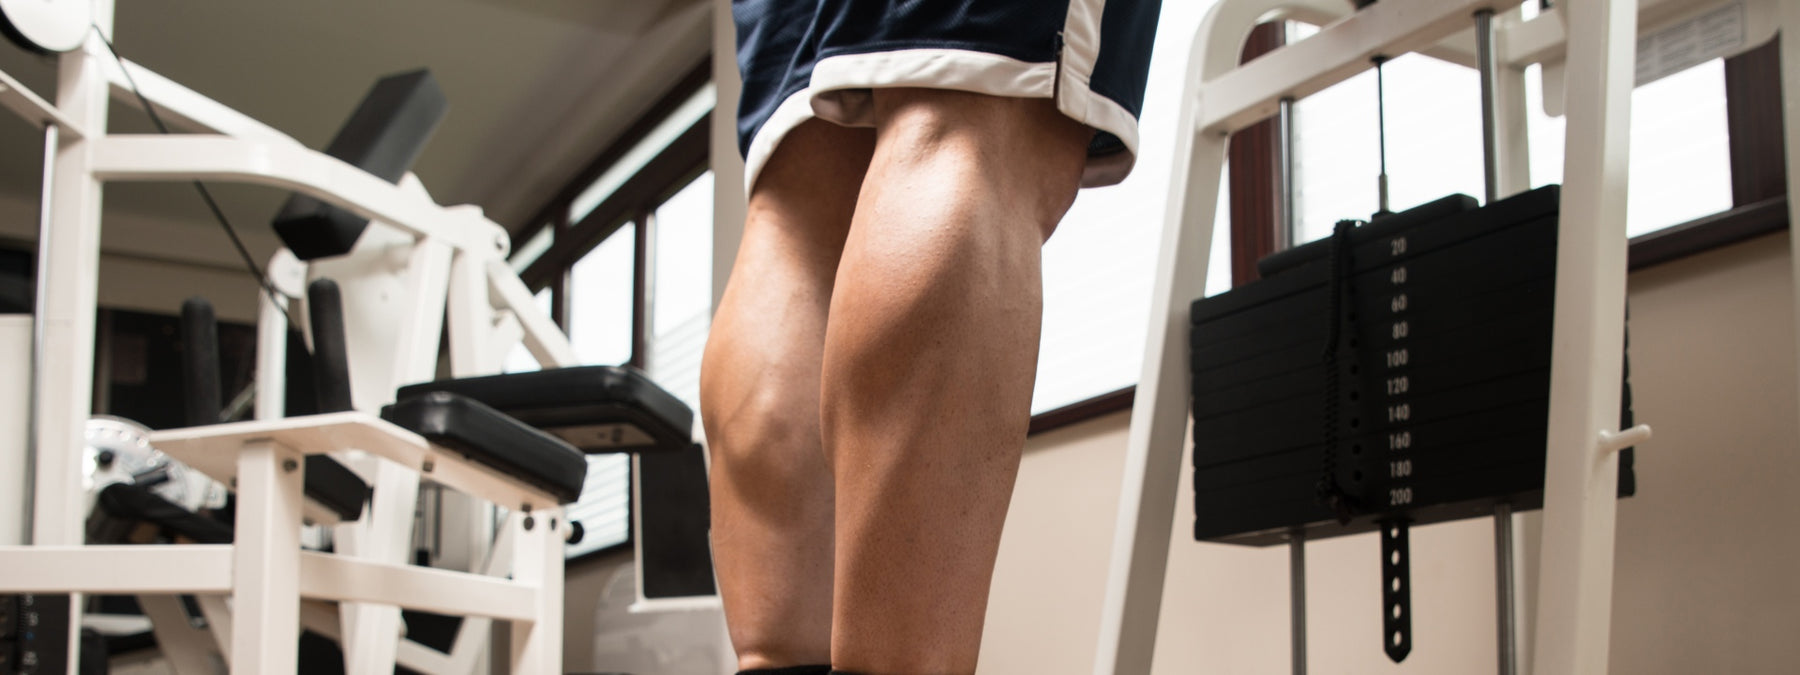 Bulls of Steel: The Last Calves Workout You Will Ever Need